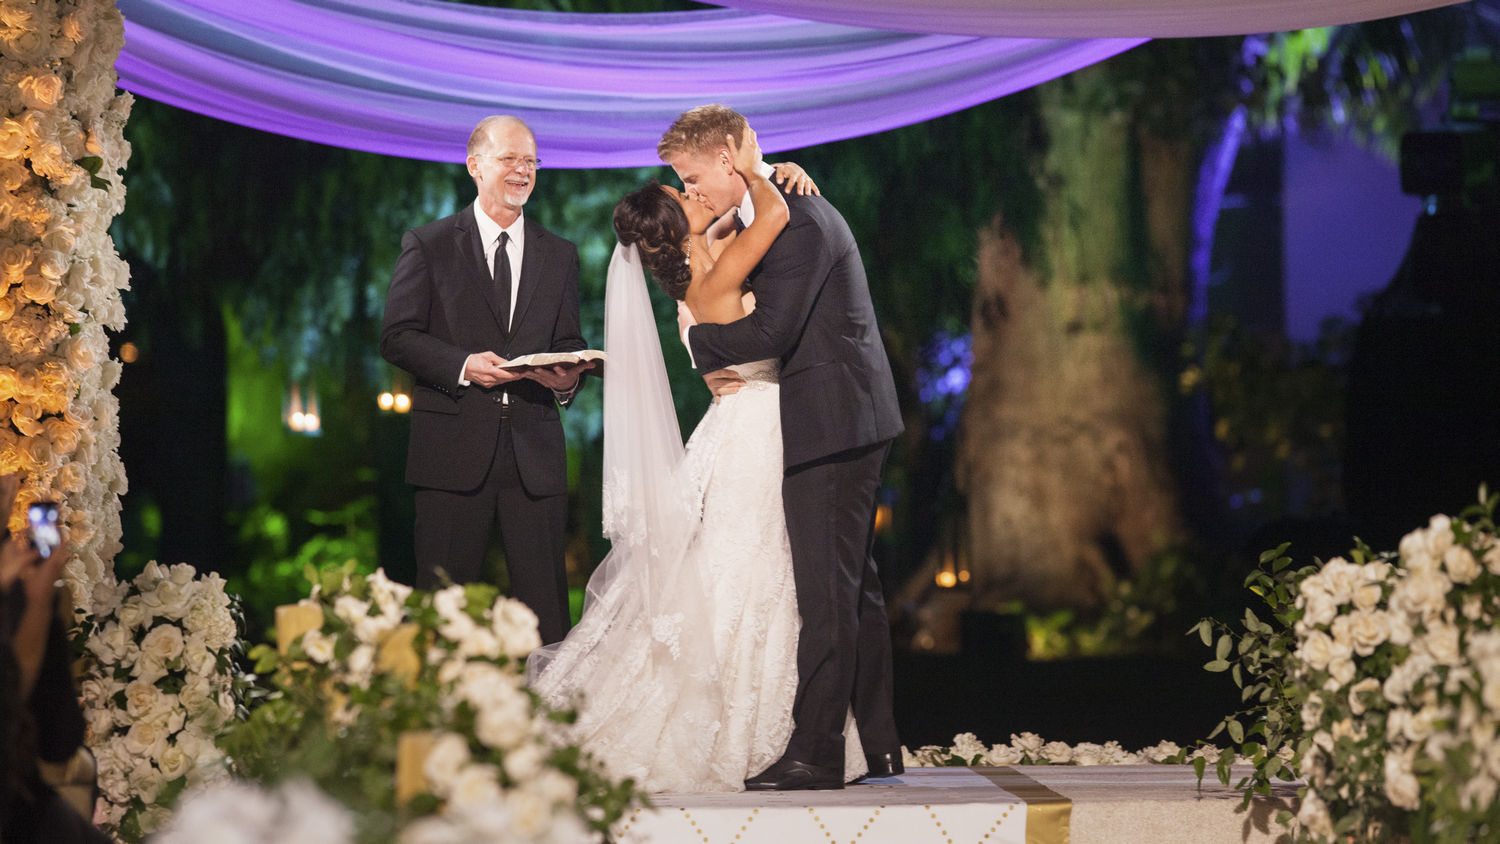 wedding-abc-bachelor-sean-lowe-catherine-guidici-johnandjoseph153.jpg